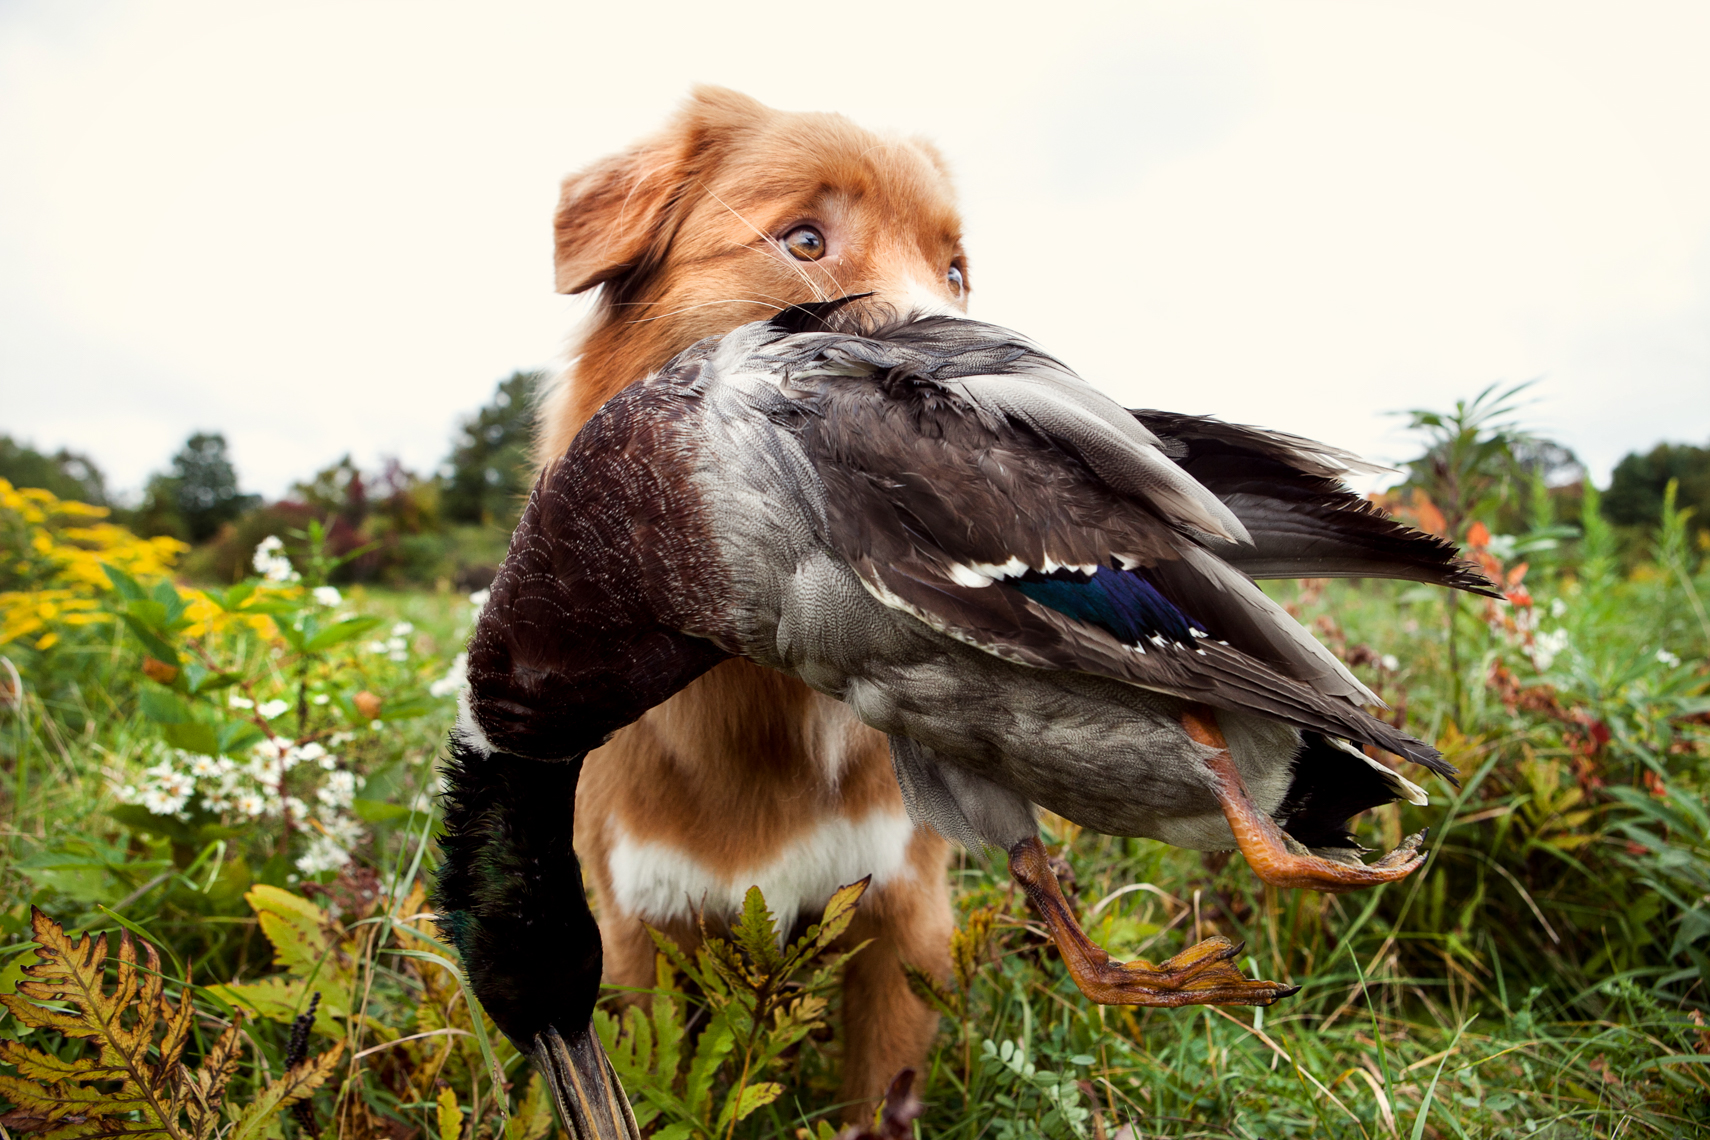 Nova Scotia Duck Tolling Retriever with a duck in his mouth